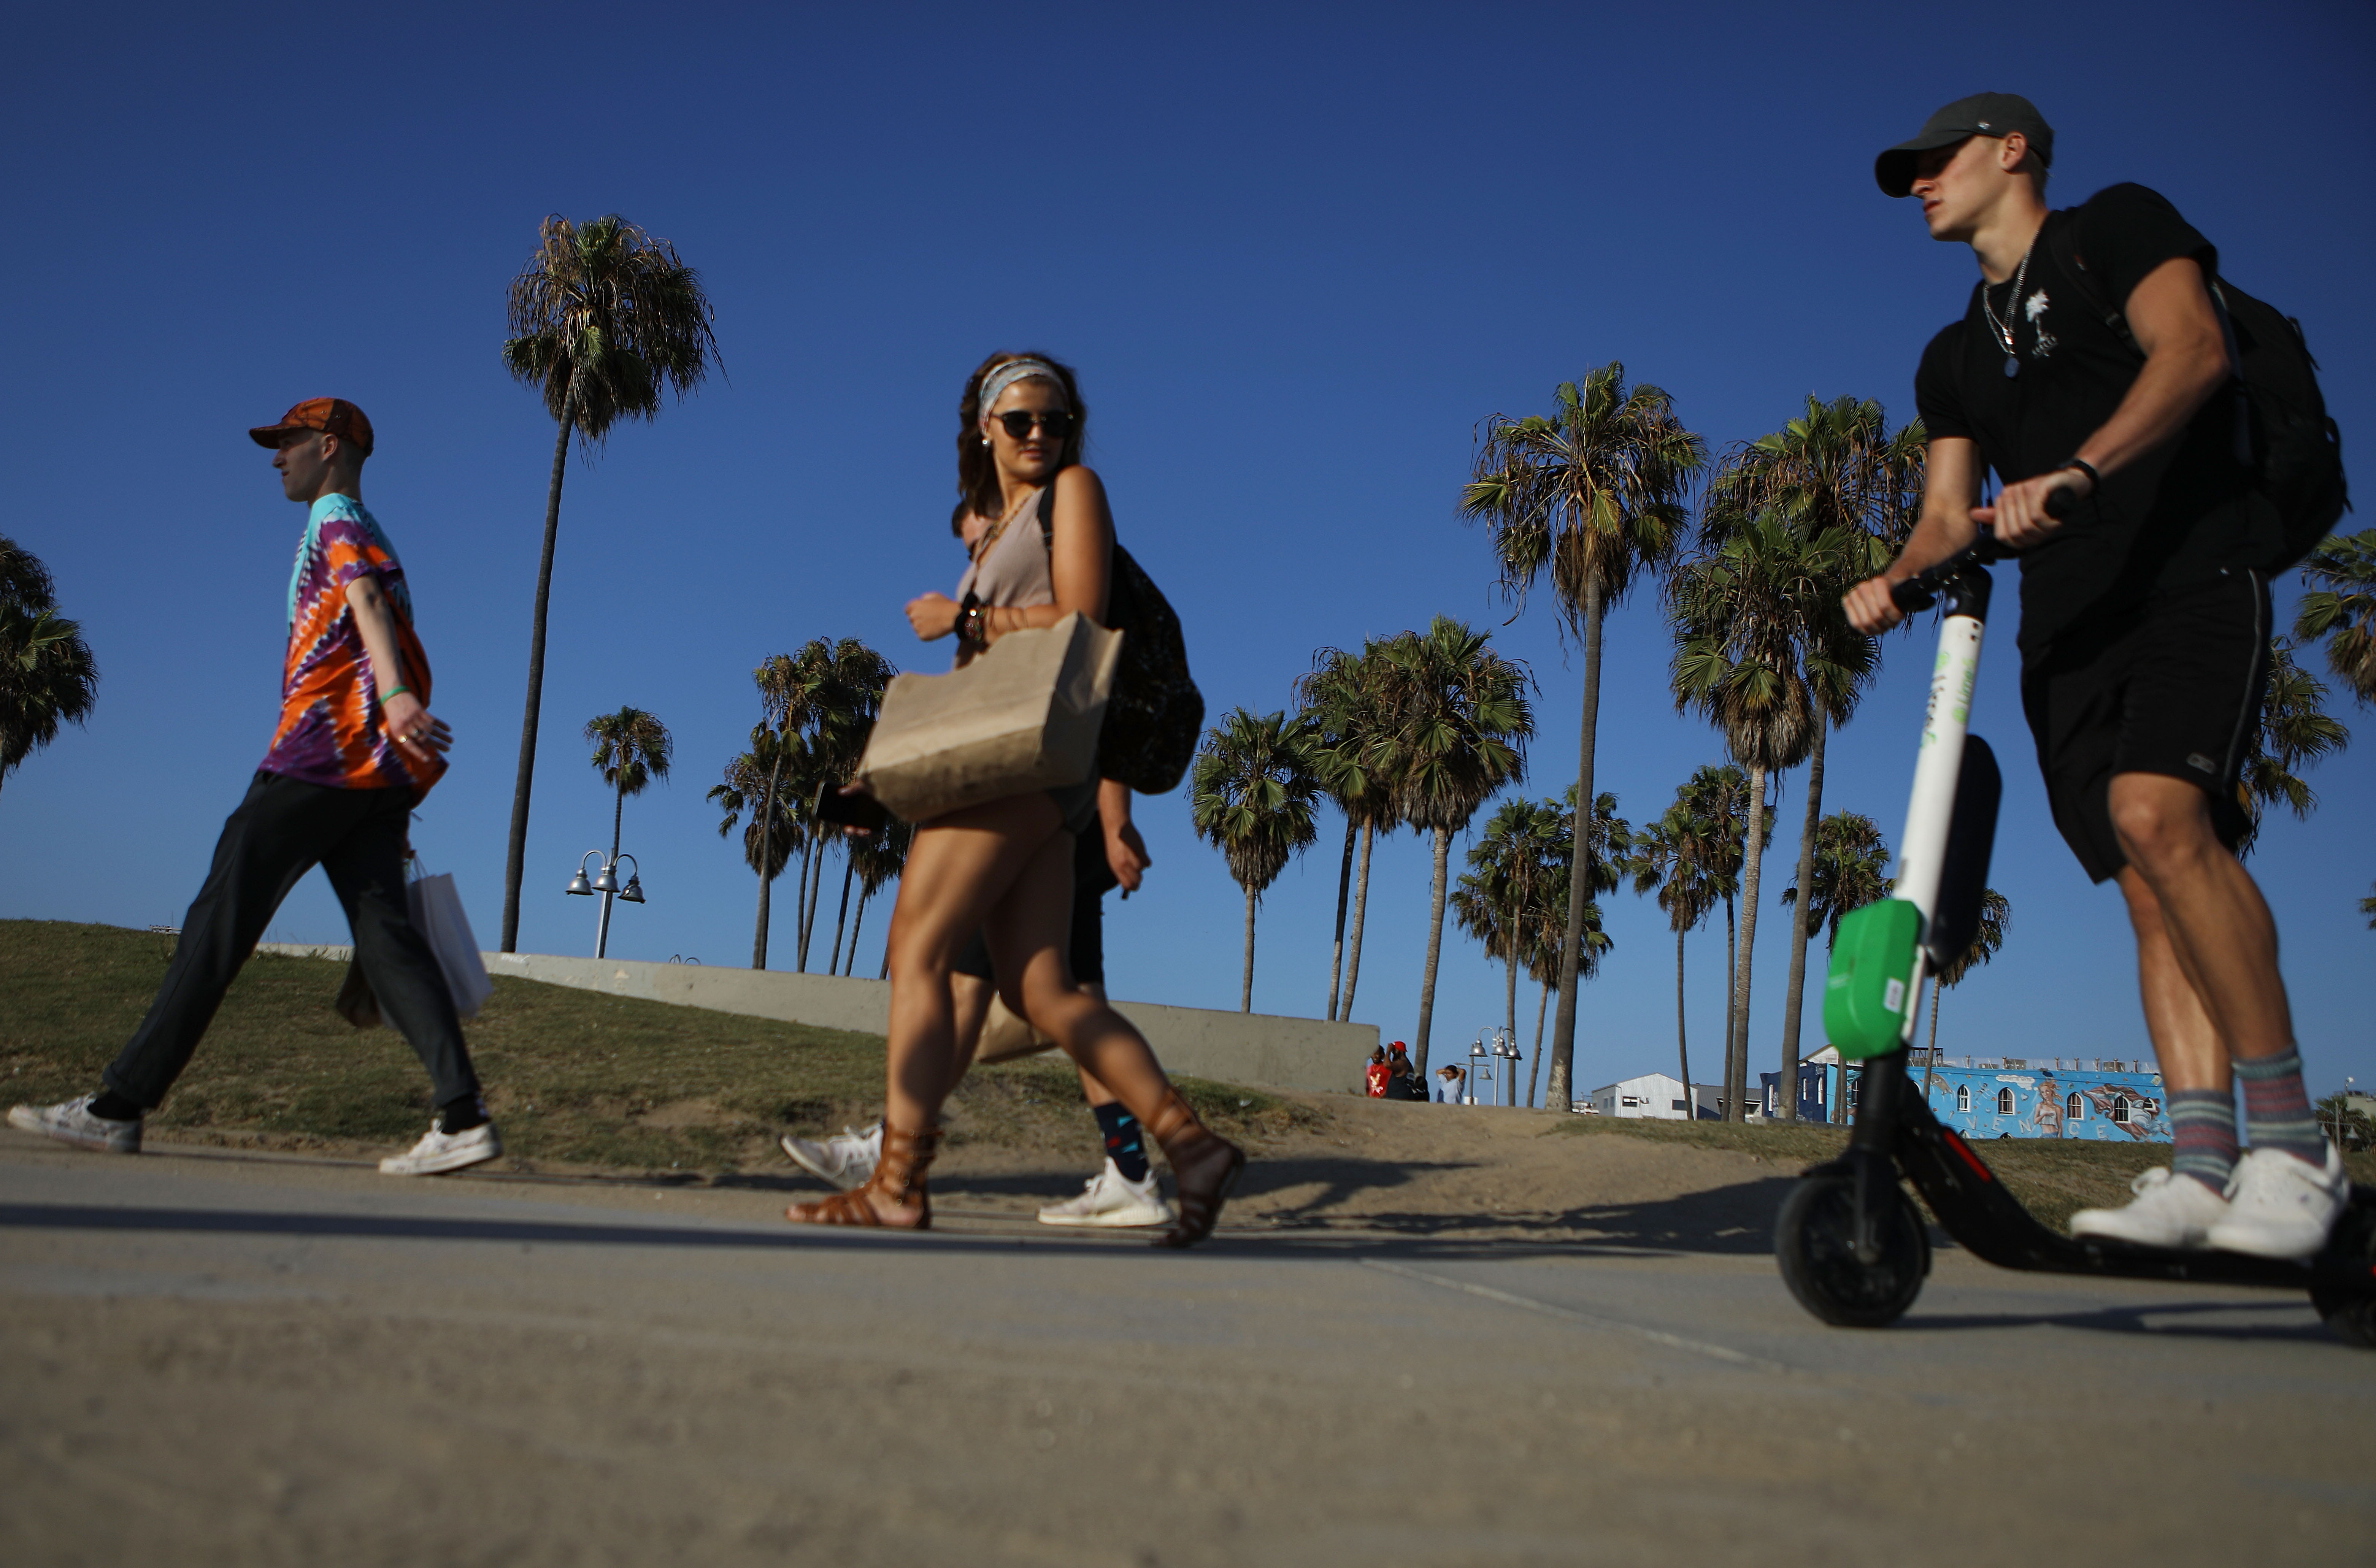 A man rides a Lime shared dockless electric scooter along Venice Beach on August 13, 2018 in Los Angeles, California. Mario Tama/Getty Images